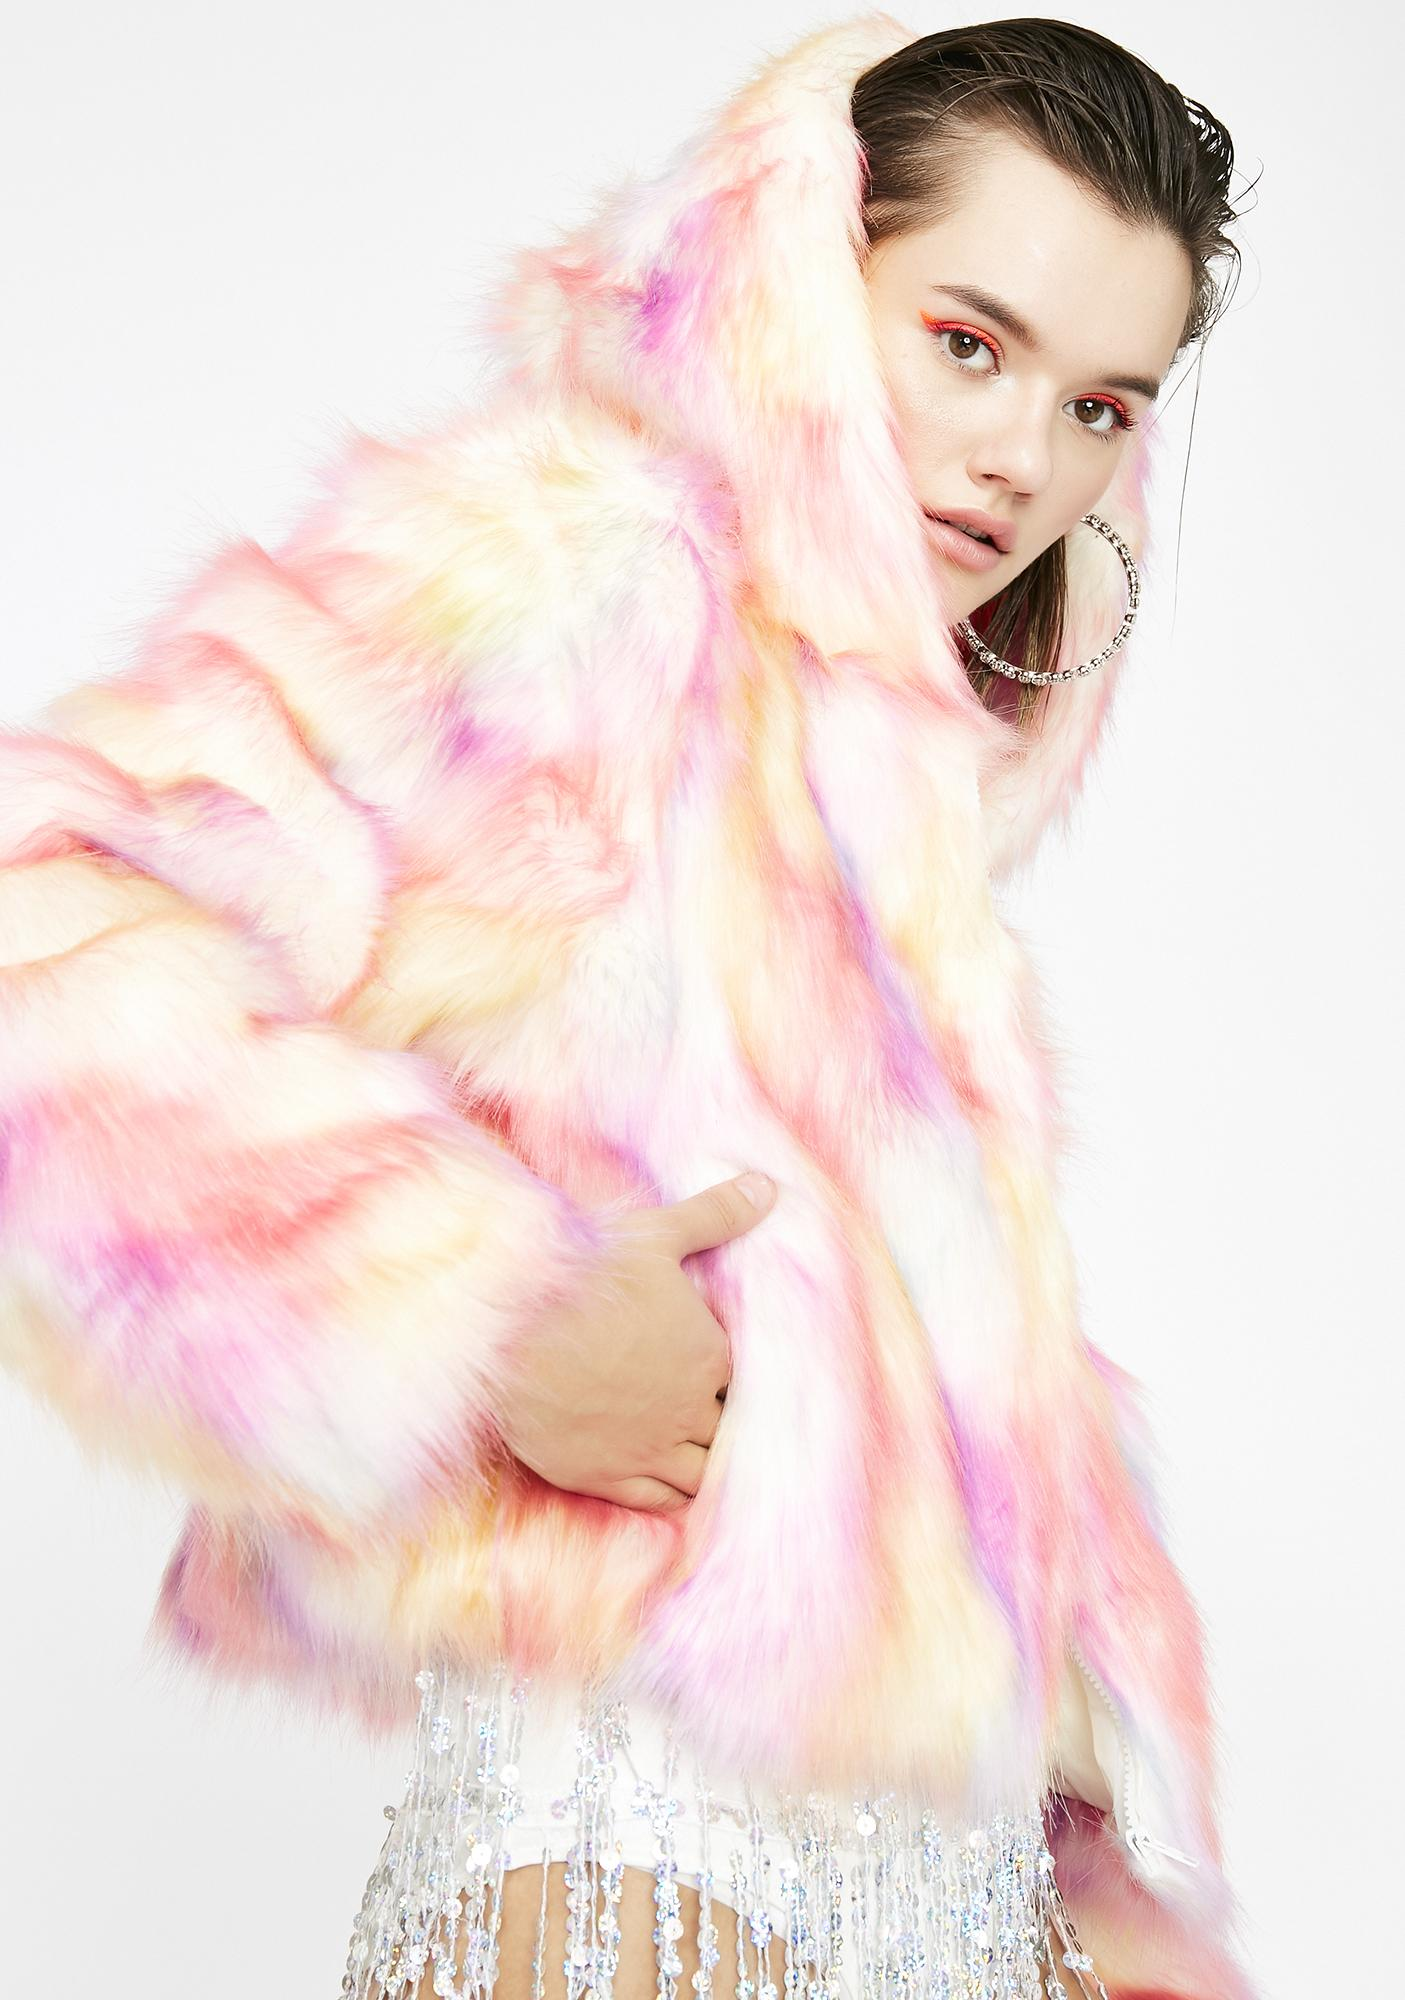 Candy Flossin' Fuzzy Jacket